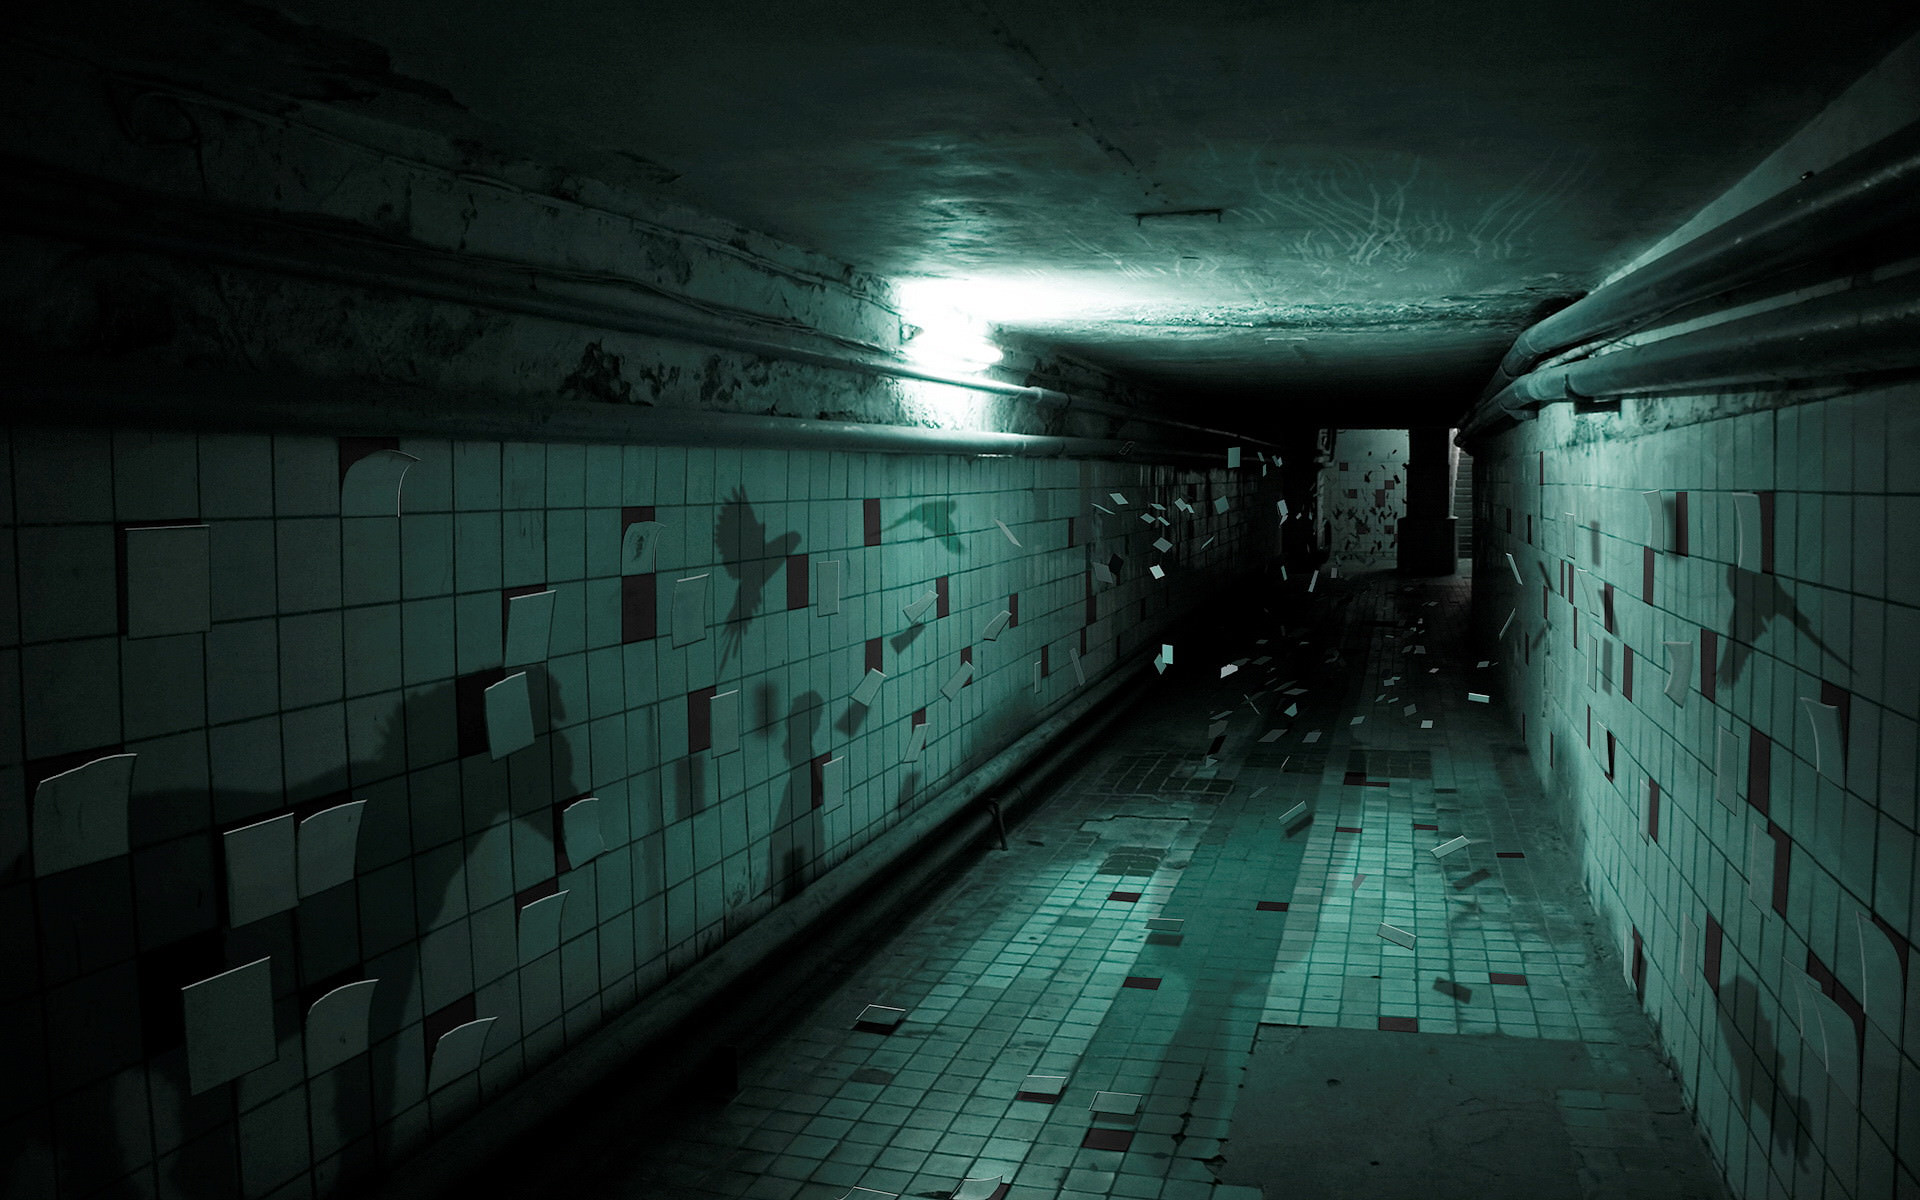 Creepy Subway Background